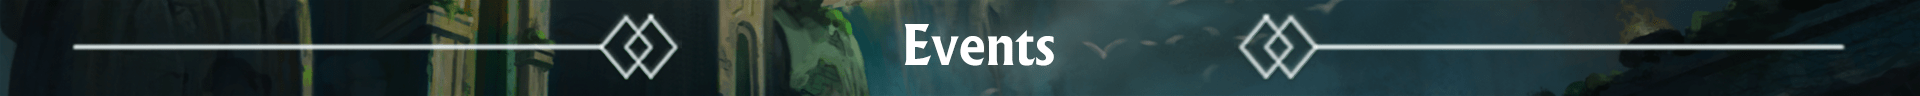 subheading image for new events feature